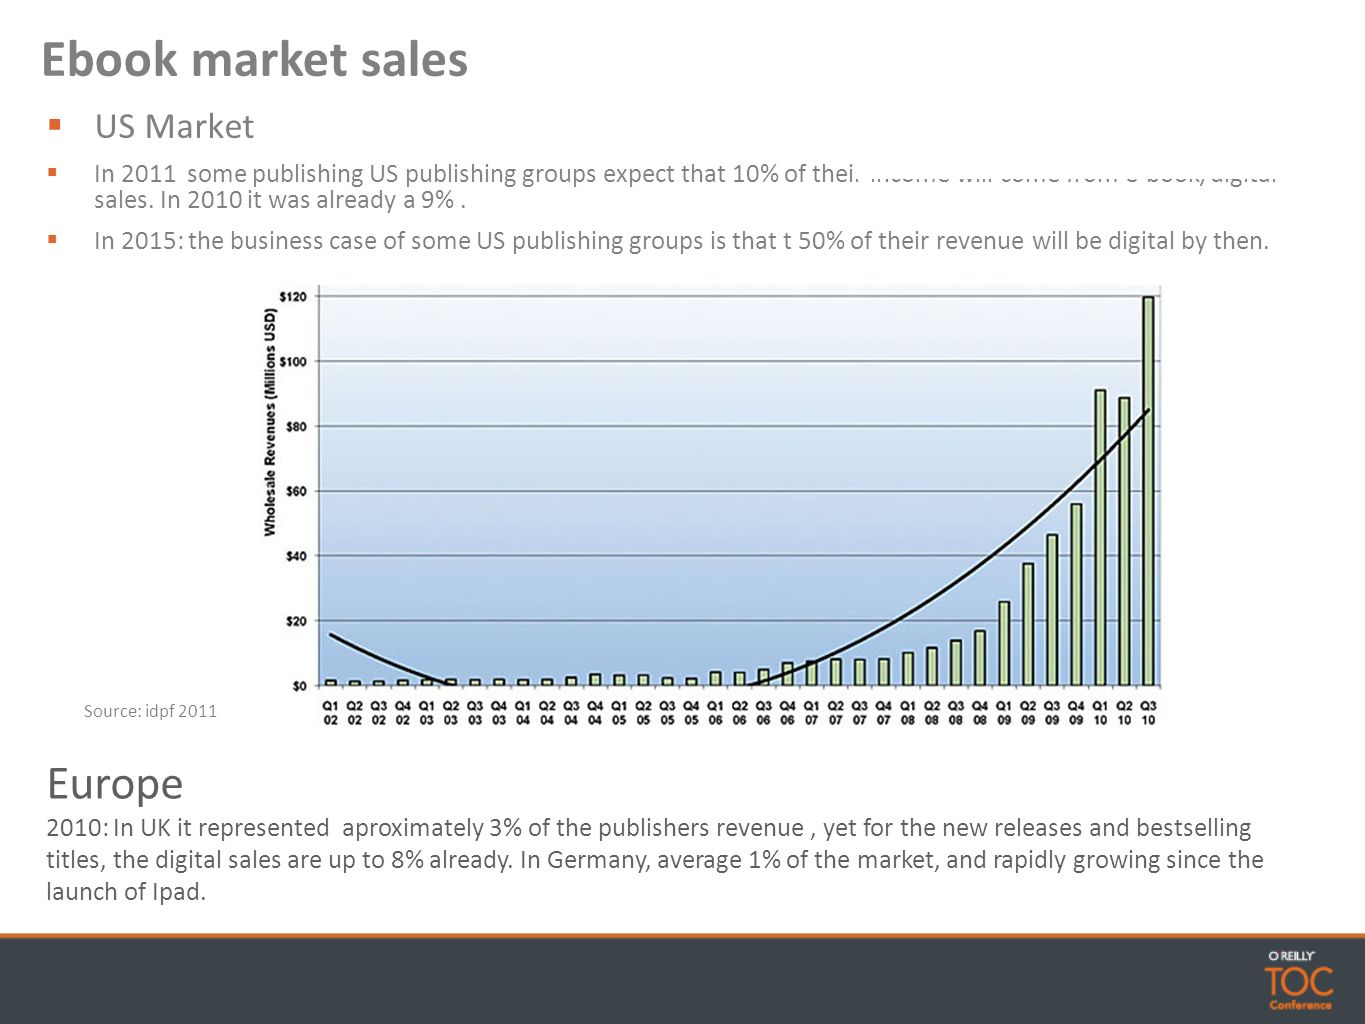 Ebook market sales US Market In 2011 some publishing US publishing groups expect that 10% of their income will come from e-book/digital sales.